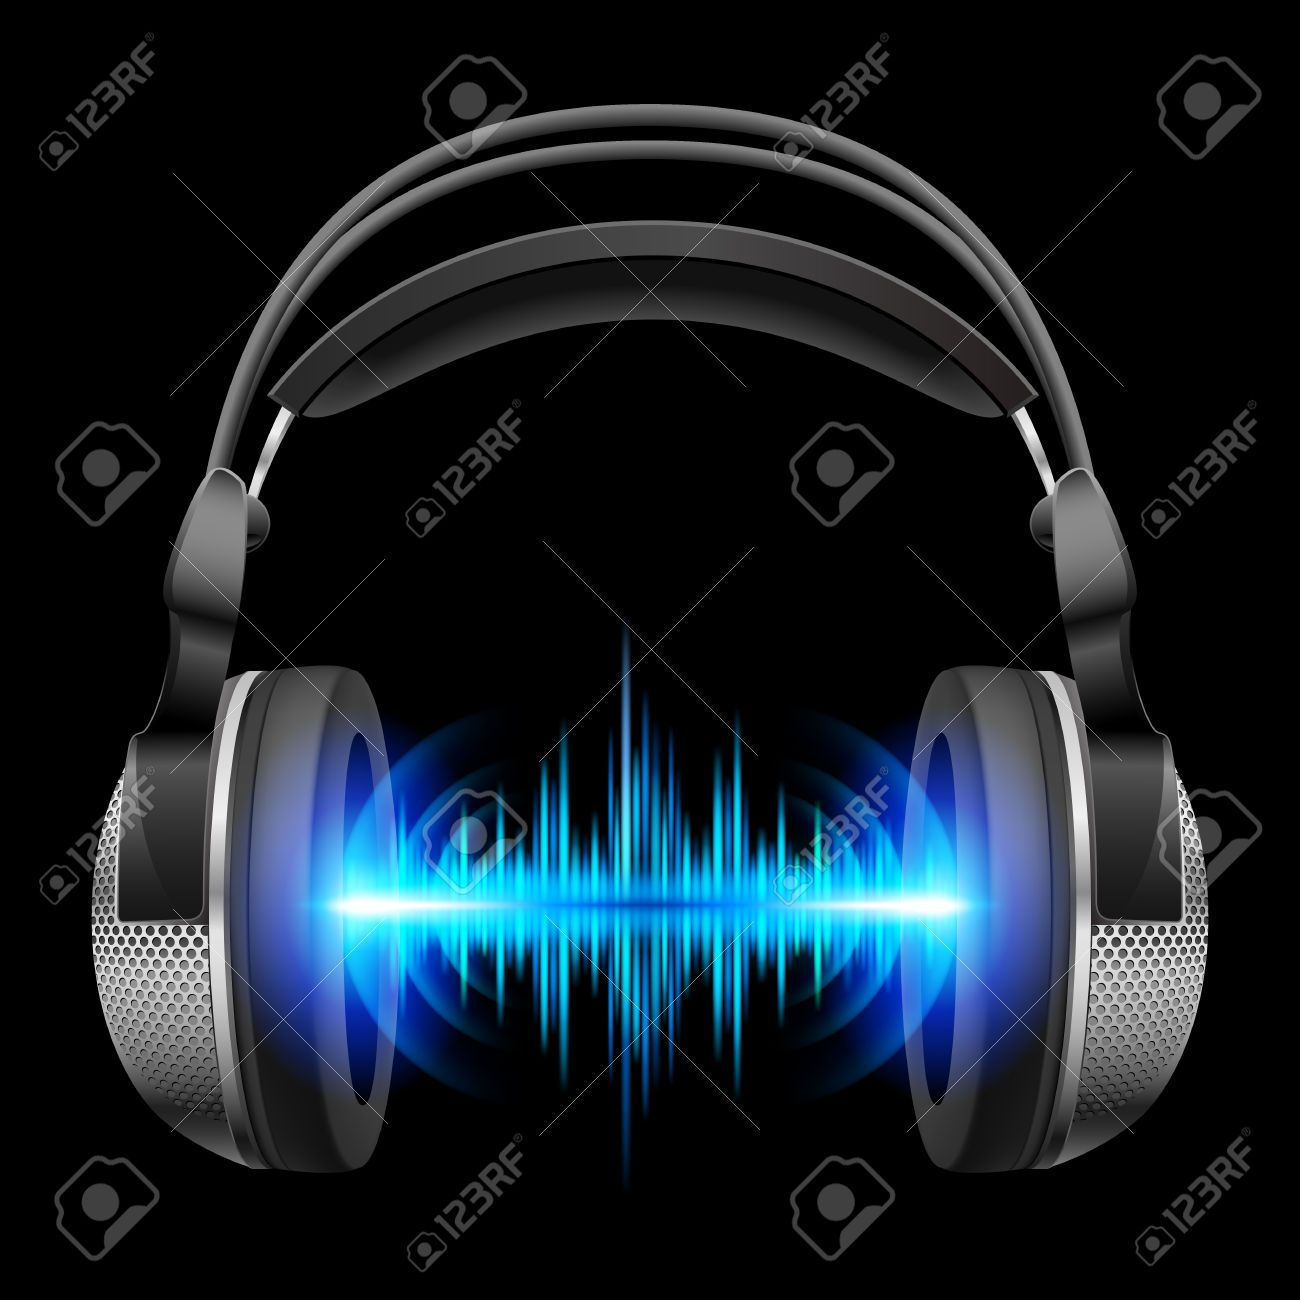 Headphones With Blue Sound Waves Illustration On Black Background Wave Illustration Sound Waves Music Cover Photos